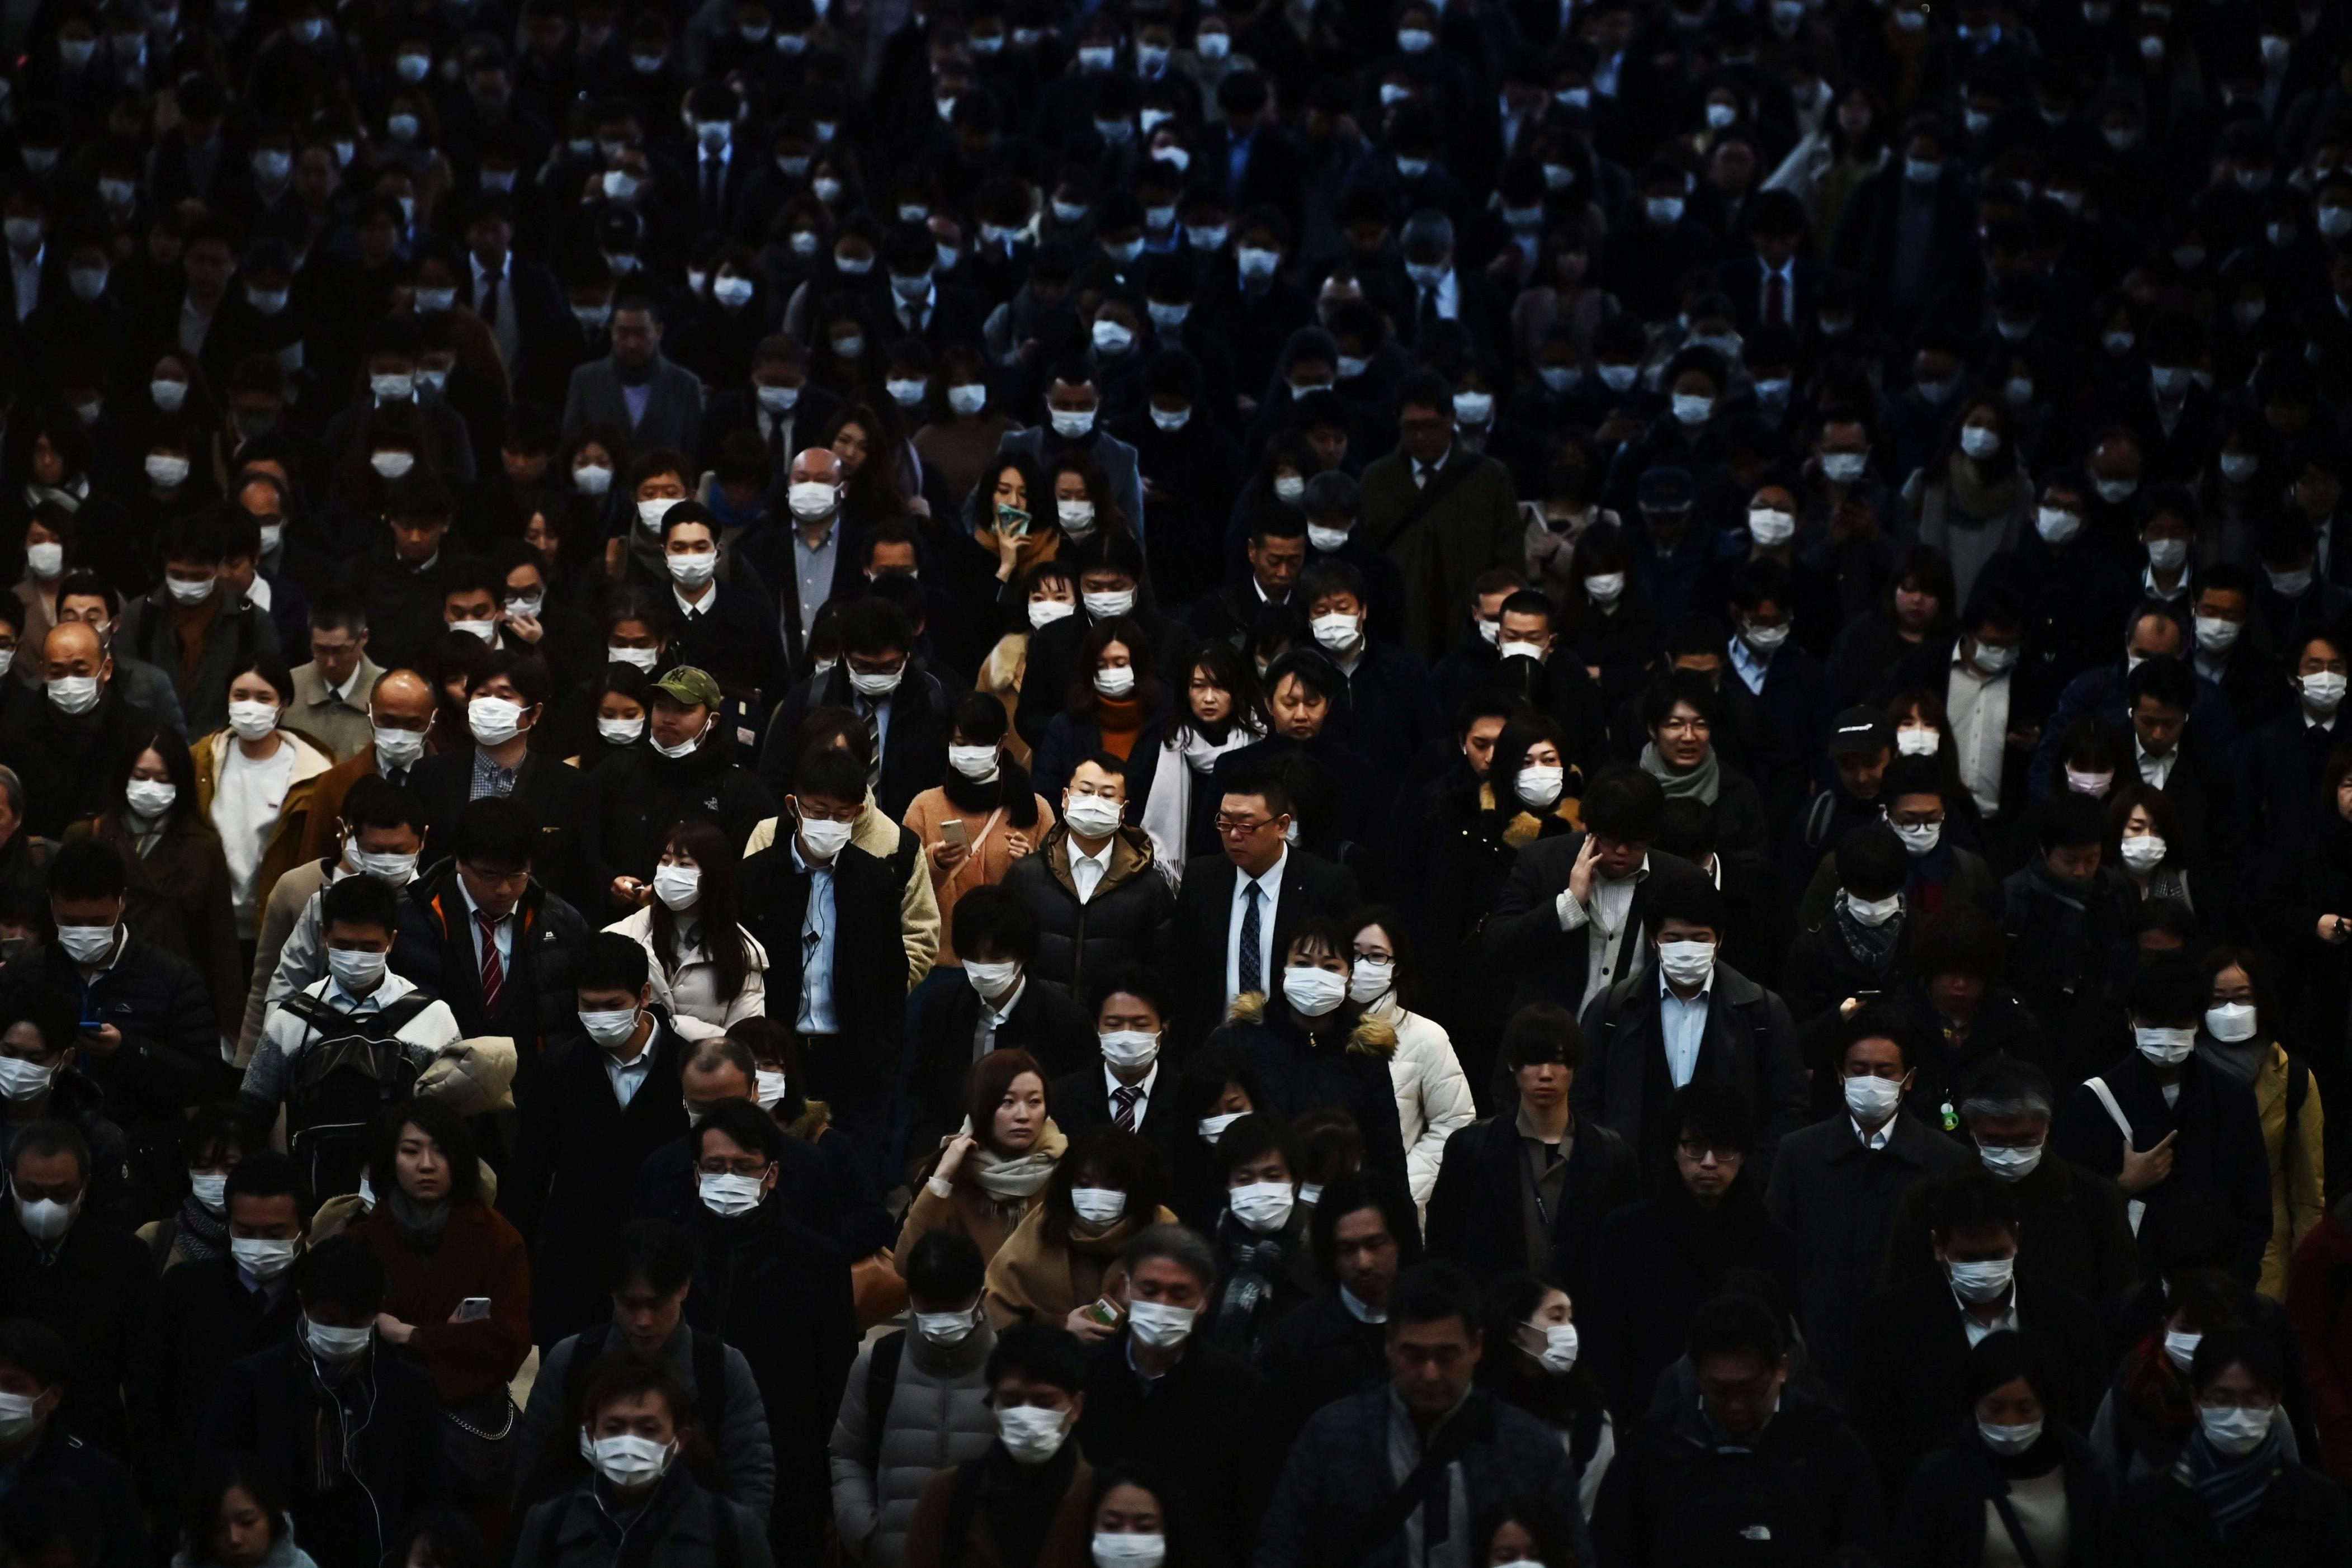 Slide 98 of 113: Mask-clad commuters make their way to work during morning rush hour at the Shinagawa train station in Tokyo on Feb. 28, 2020. Tokyo's key Nikkei index plunged nearly three percent at the open on February 28 after US and European sell-offs with investors worried about the economic impact of the coronavirus outbreak.